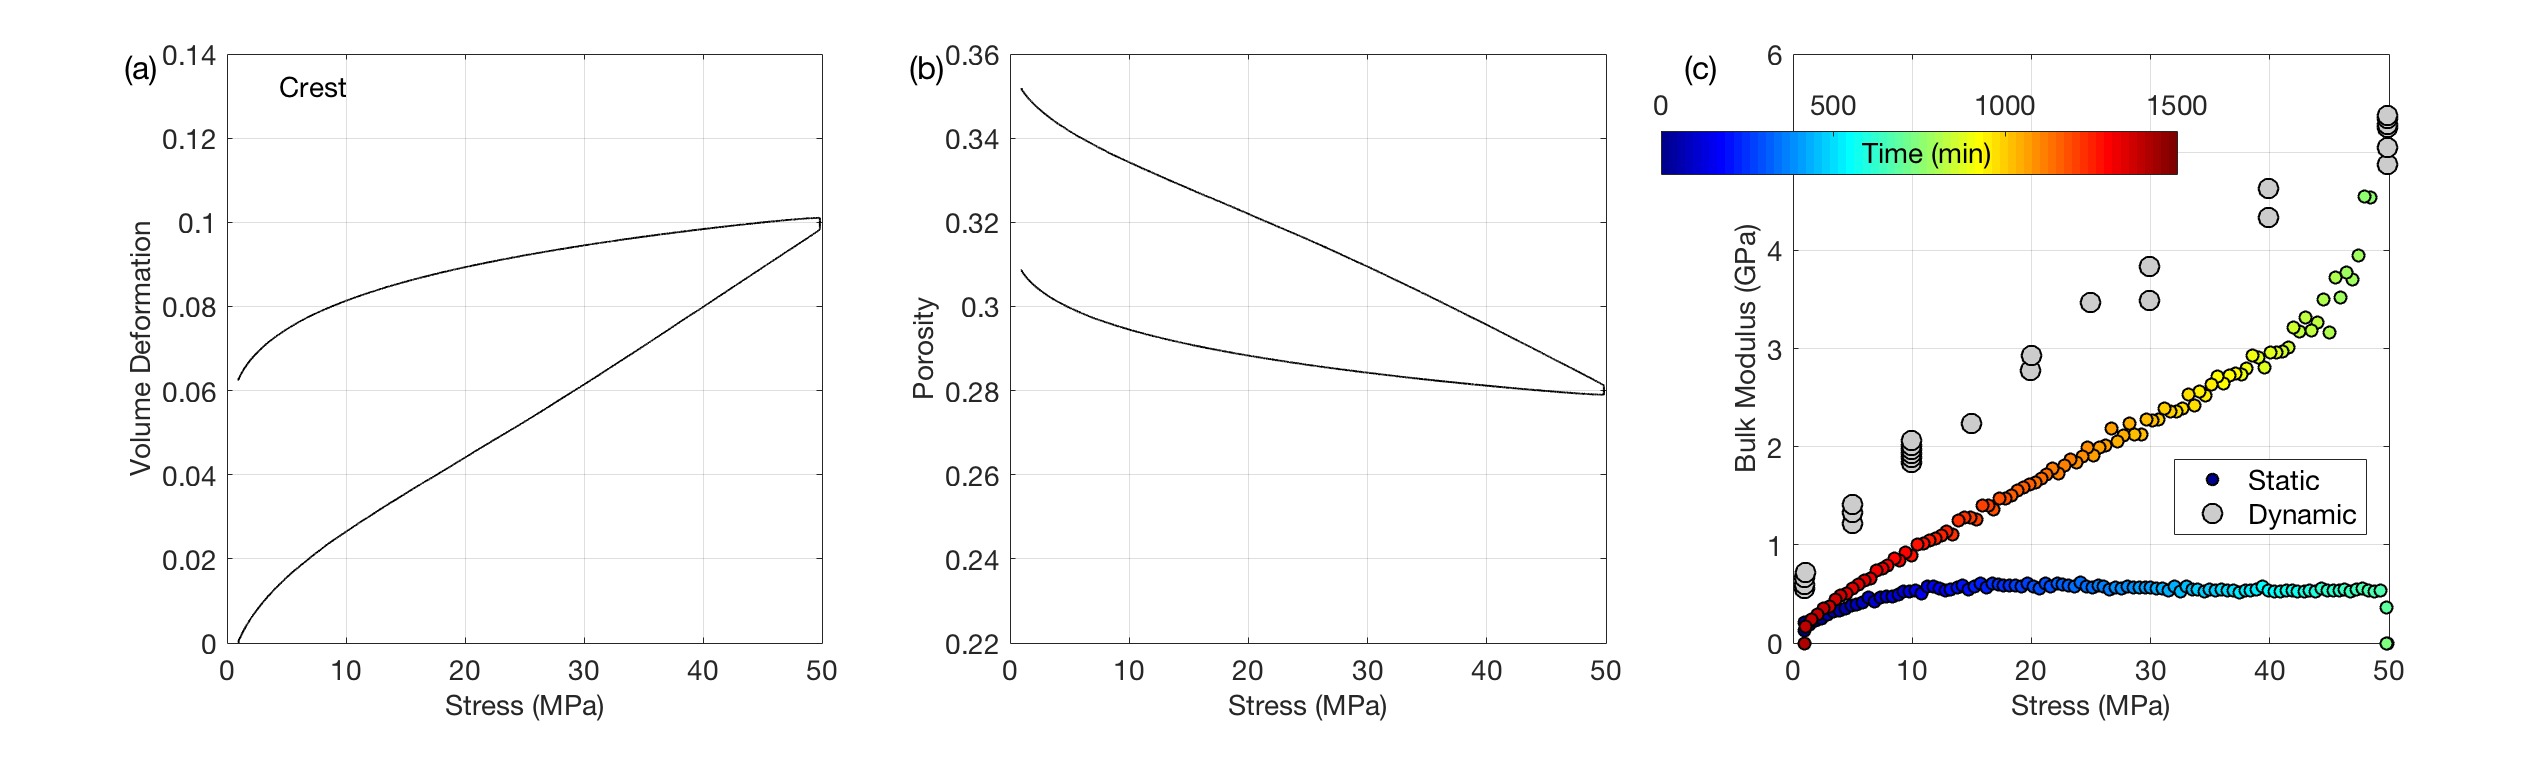 Porosity versus confining stress in three dune sand samples. The datapoints are color-coded by Vp measured during deformation. Colorbar in the middle refers to all three plots.